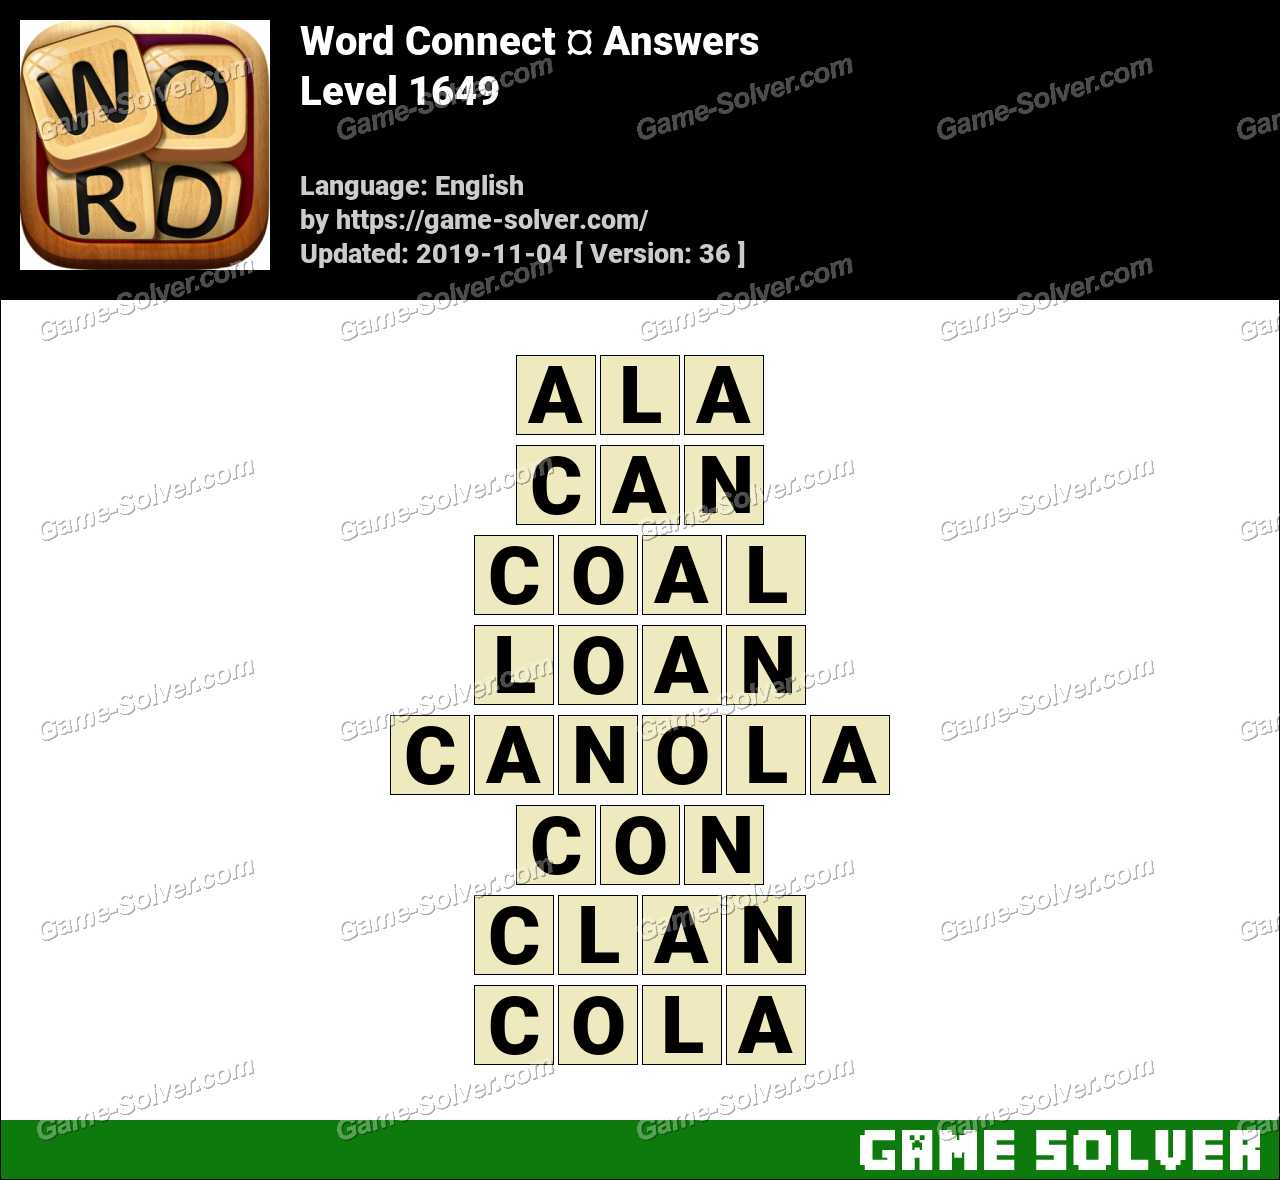 Word Connect Level 1649 Answers